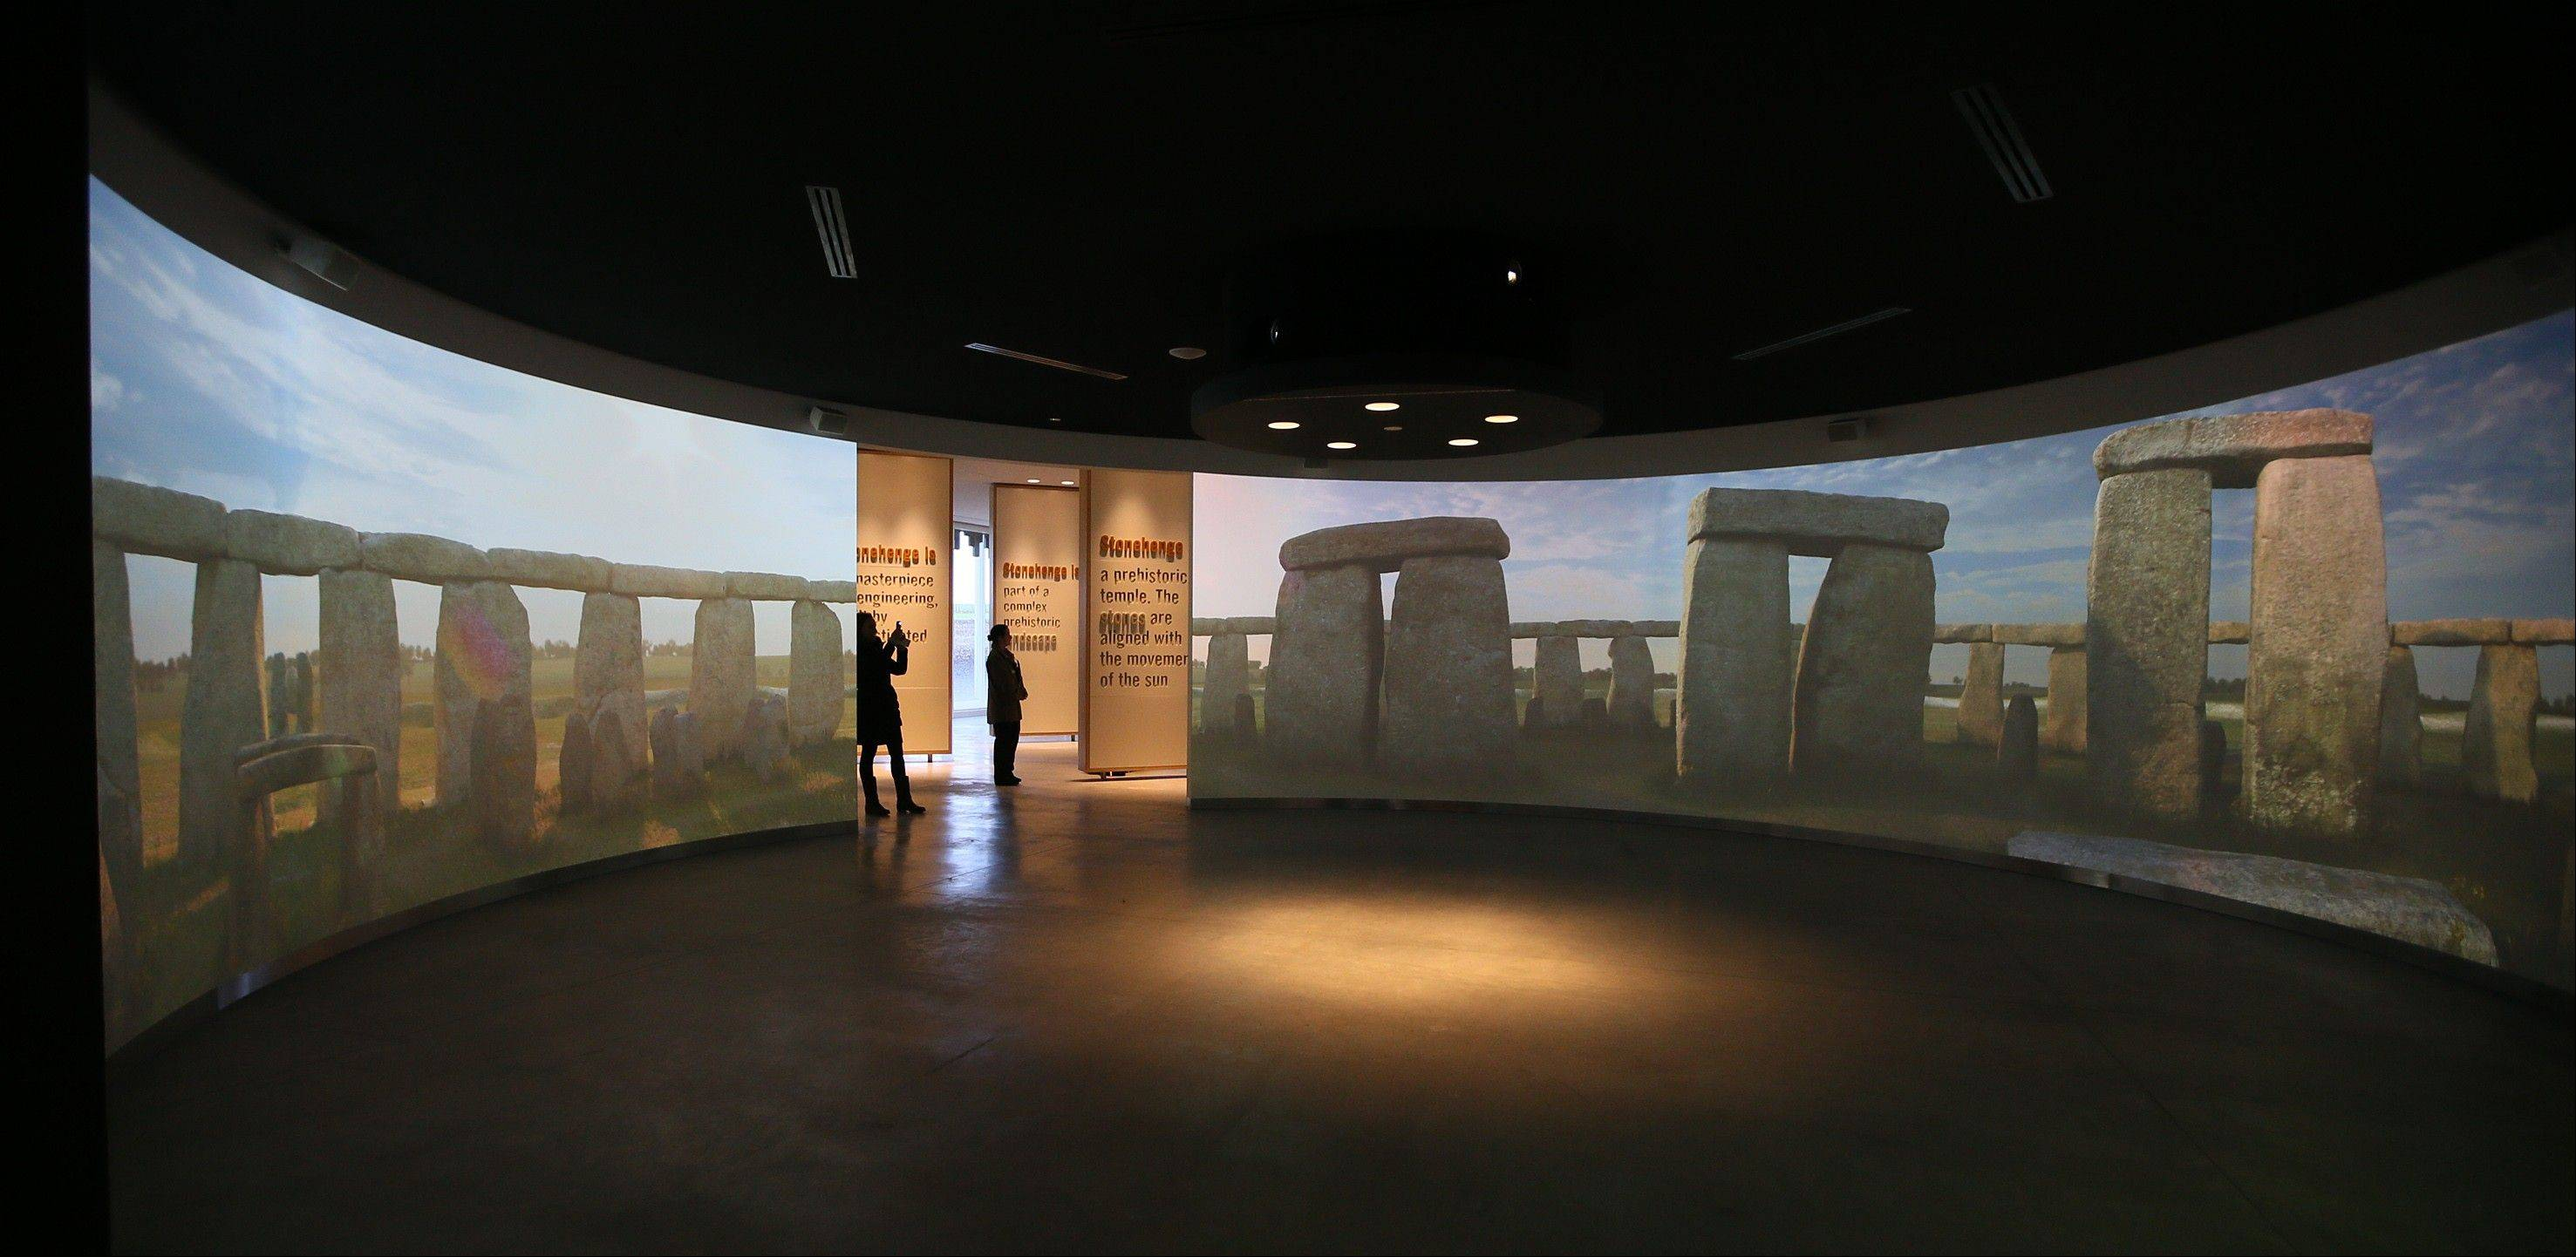 Visitors look at the audiovisual exhibits in a new building about 1.5 miles from Stonehenge.